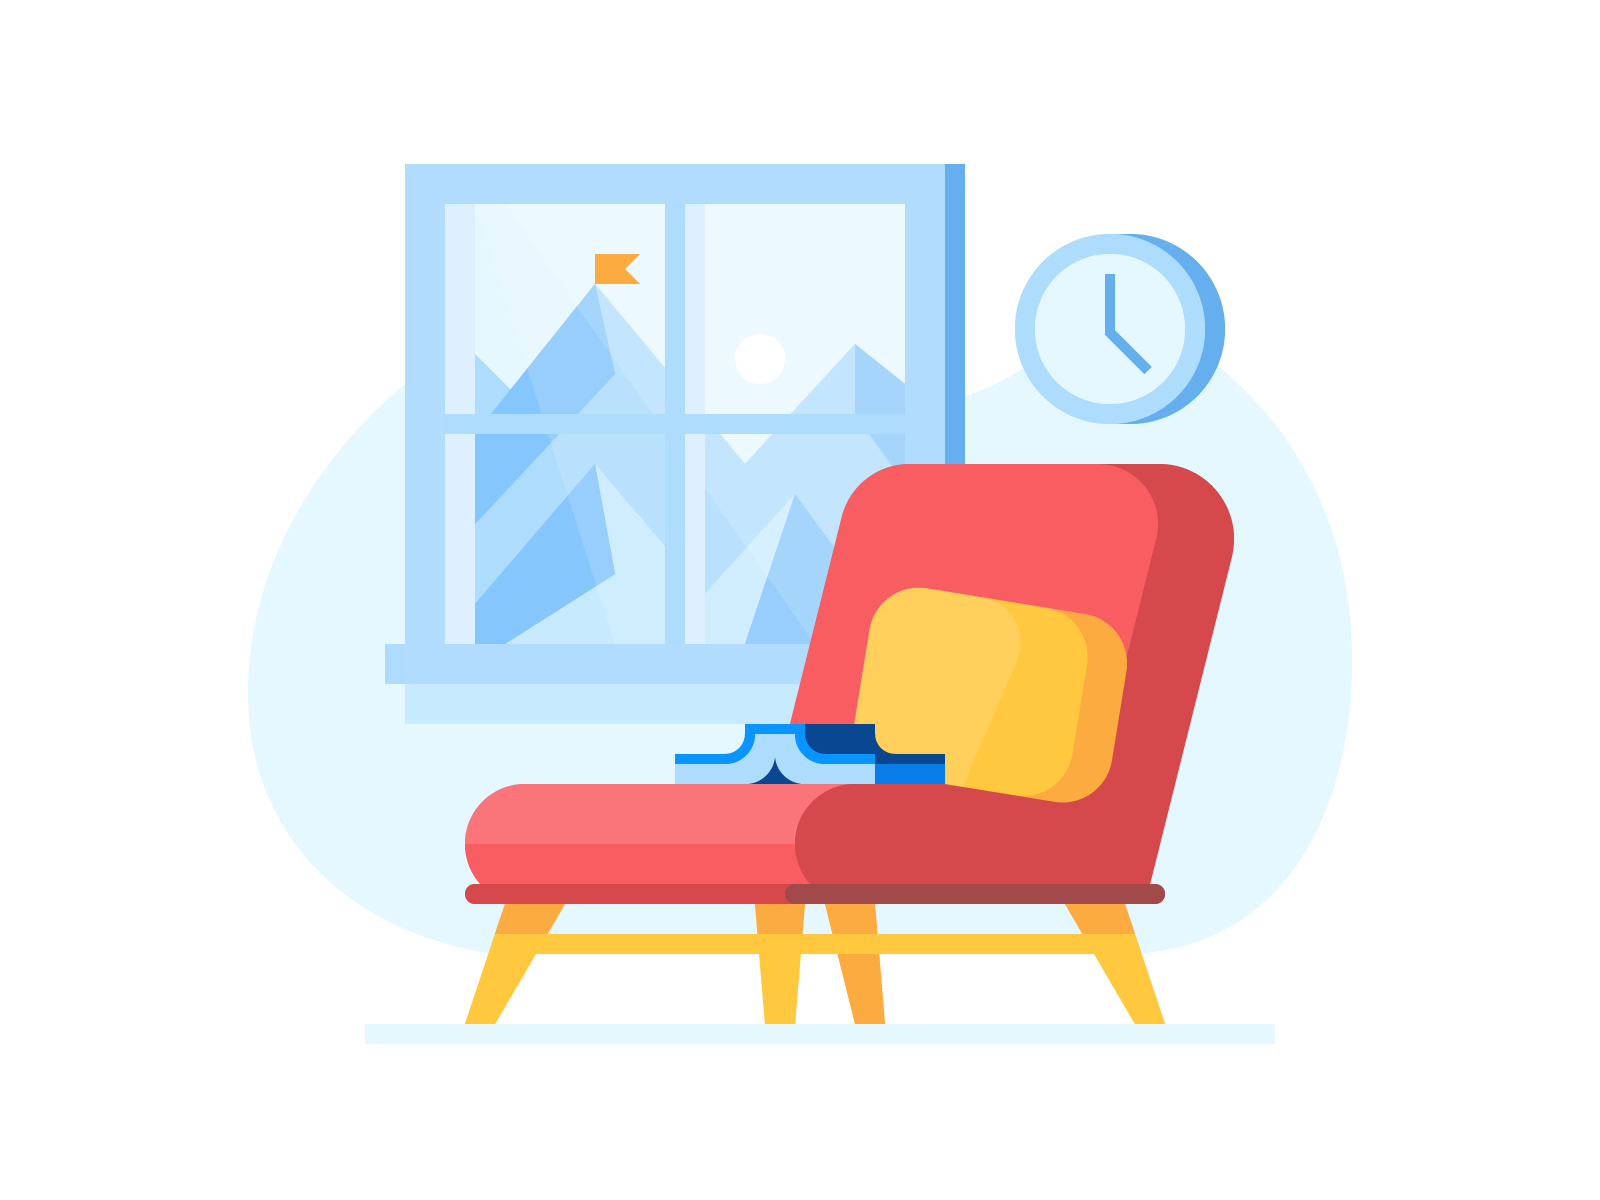 Credit karma sit tight dribbble alex pasquarella